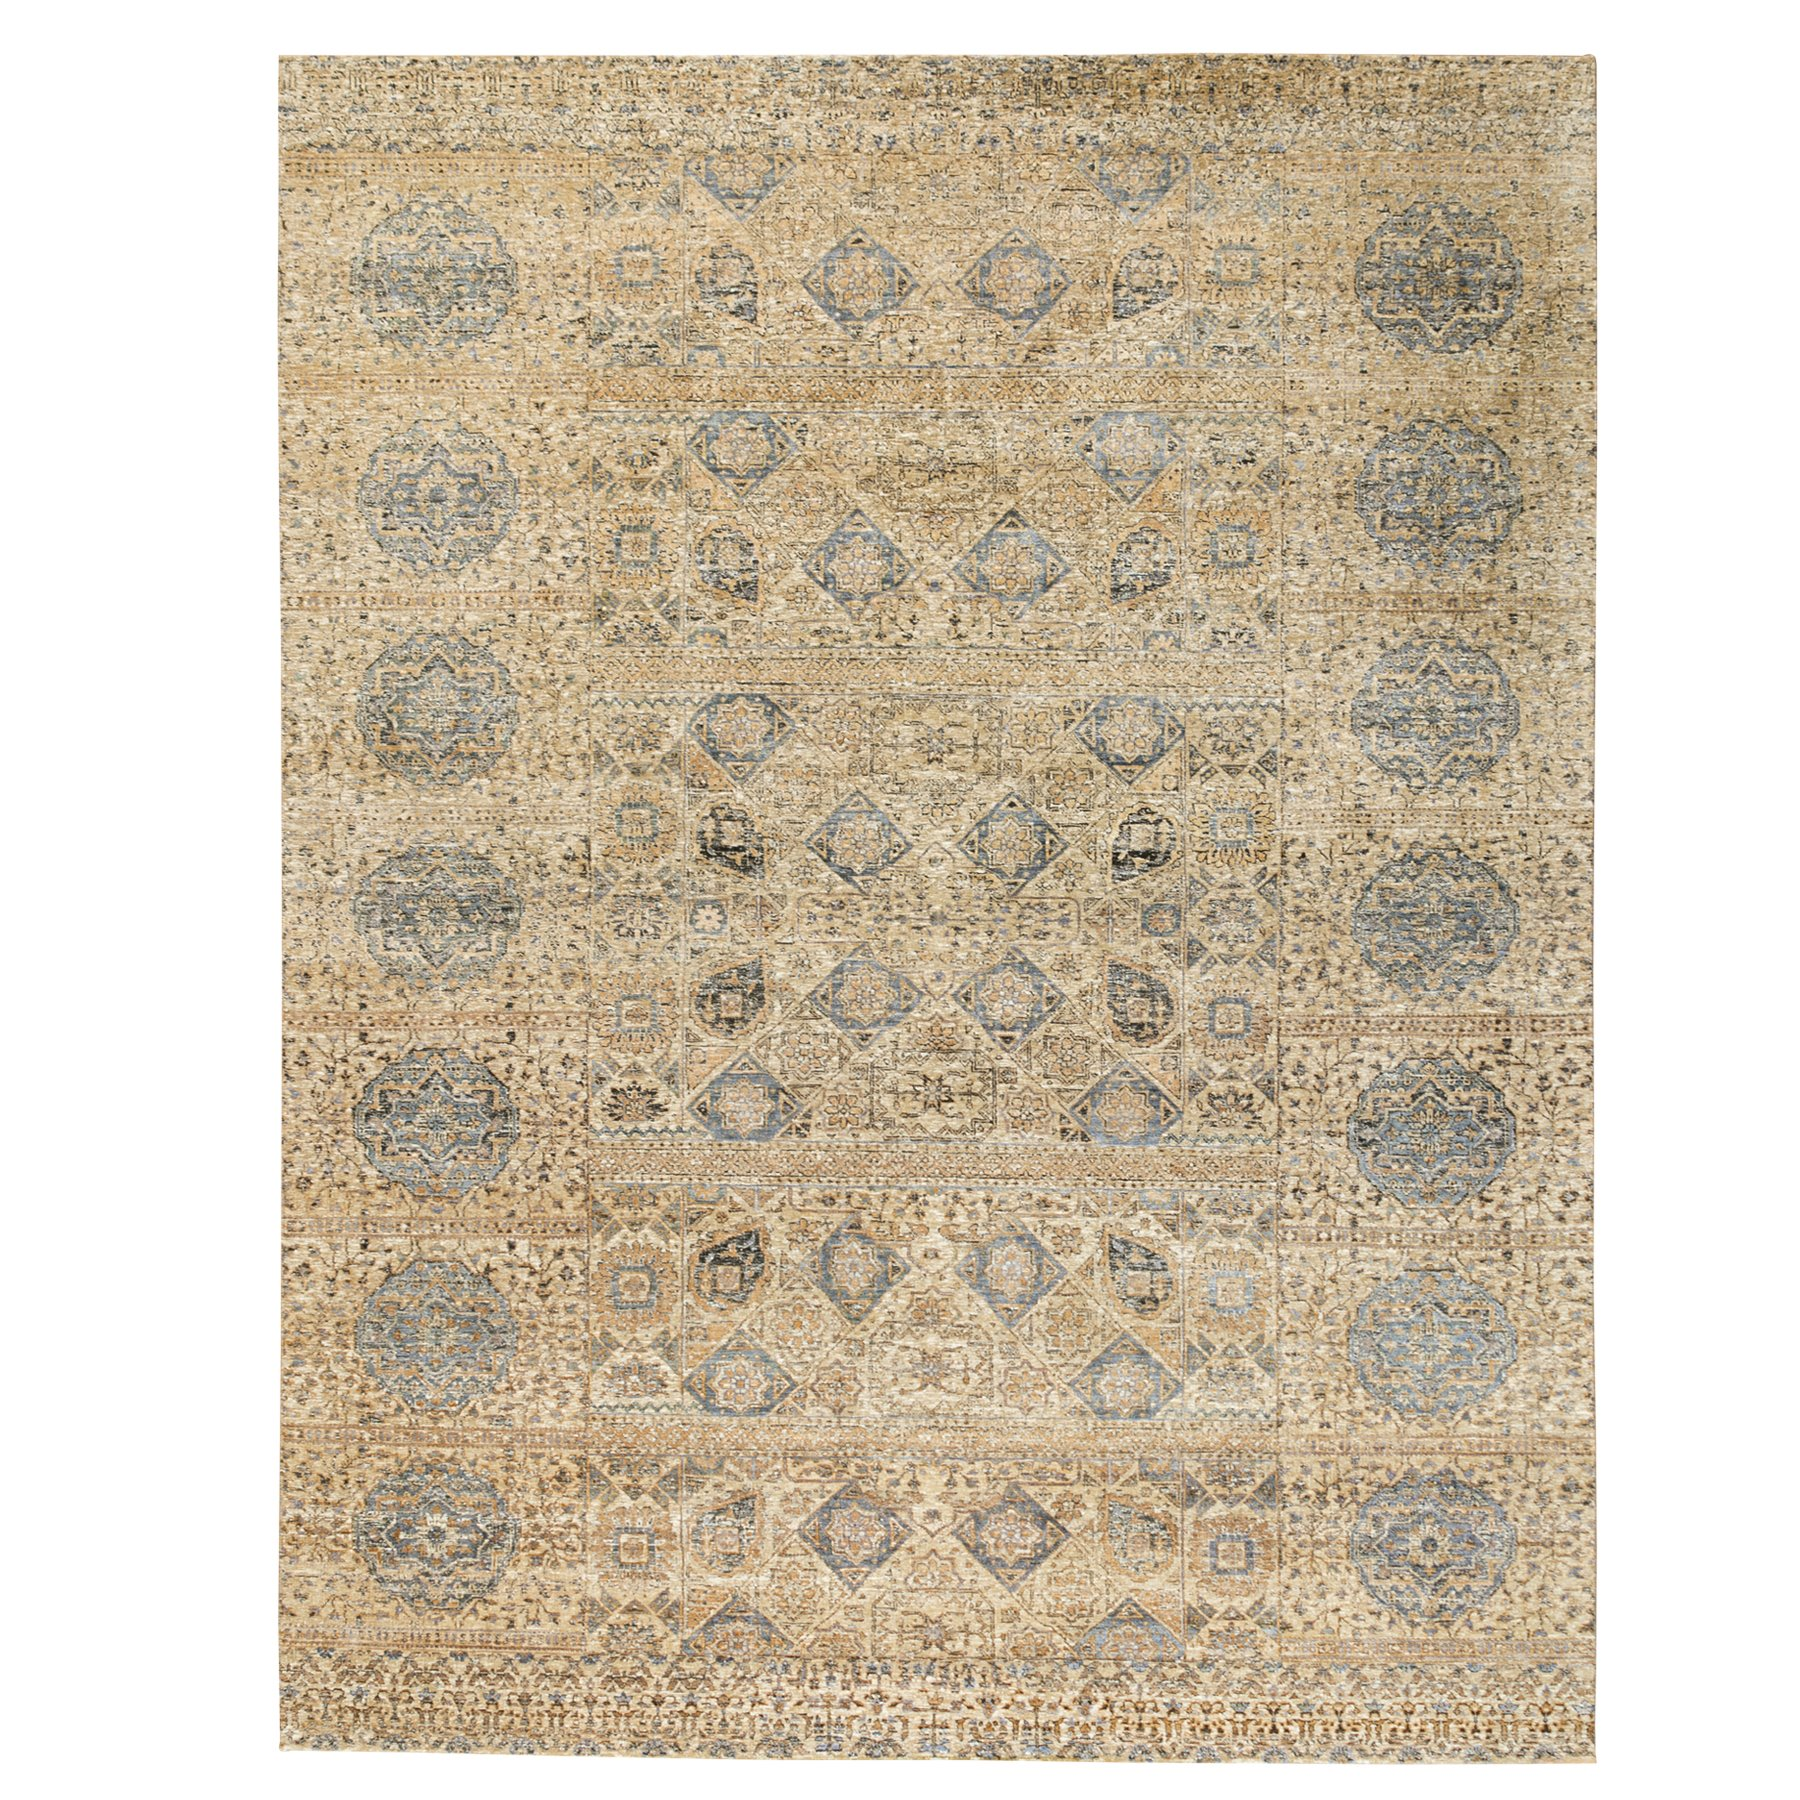 """9'2""""x12'2"""" Beige-Silver Silk With Textured Wool Mamluk Design Hand knotted Rug"""